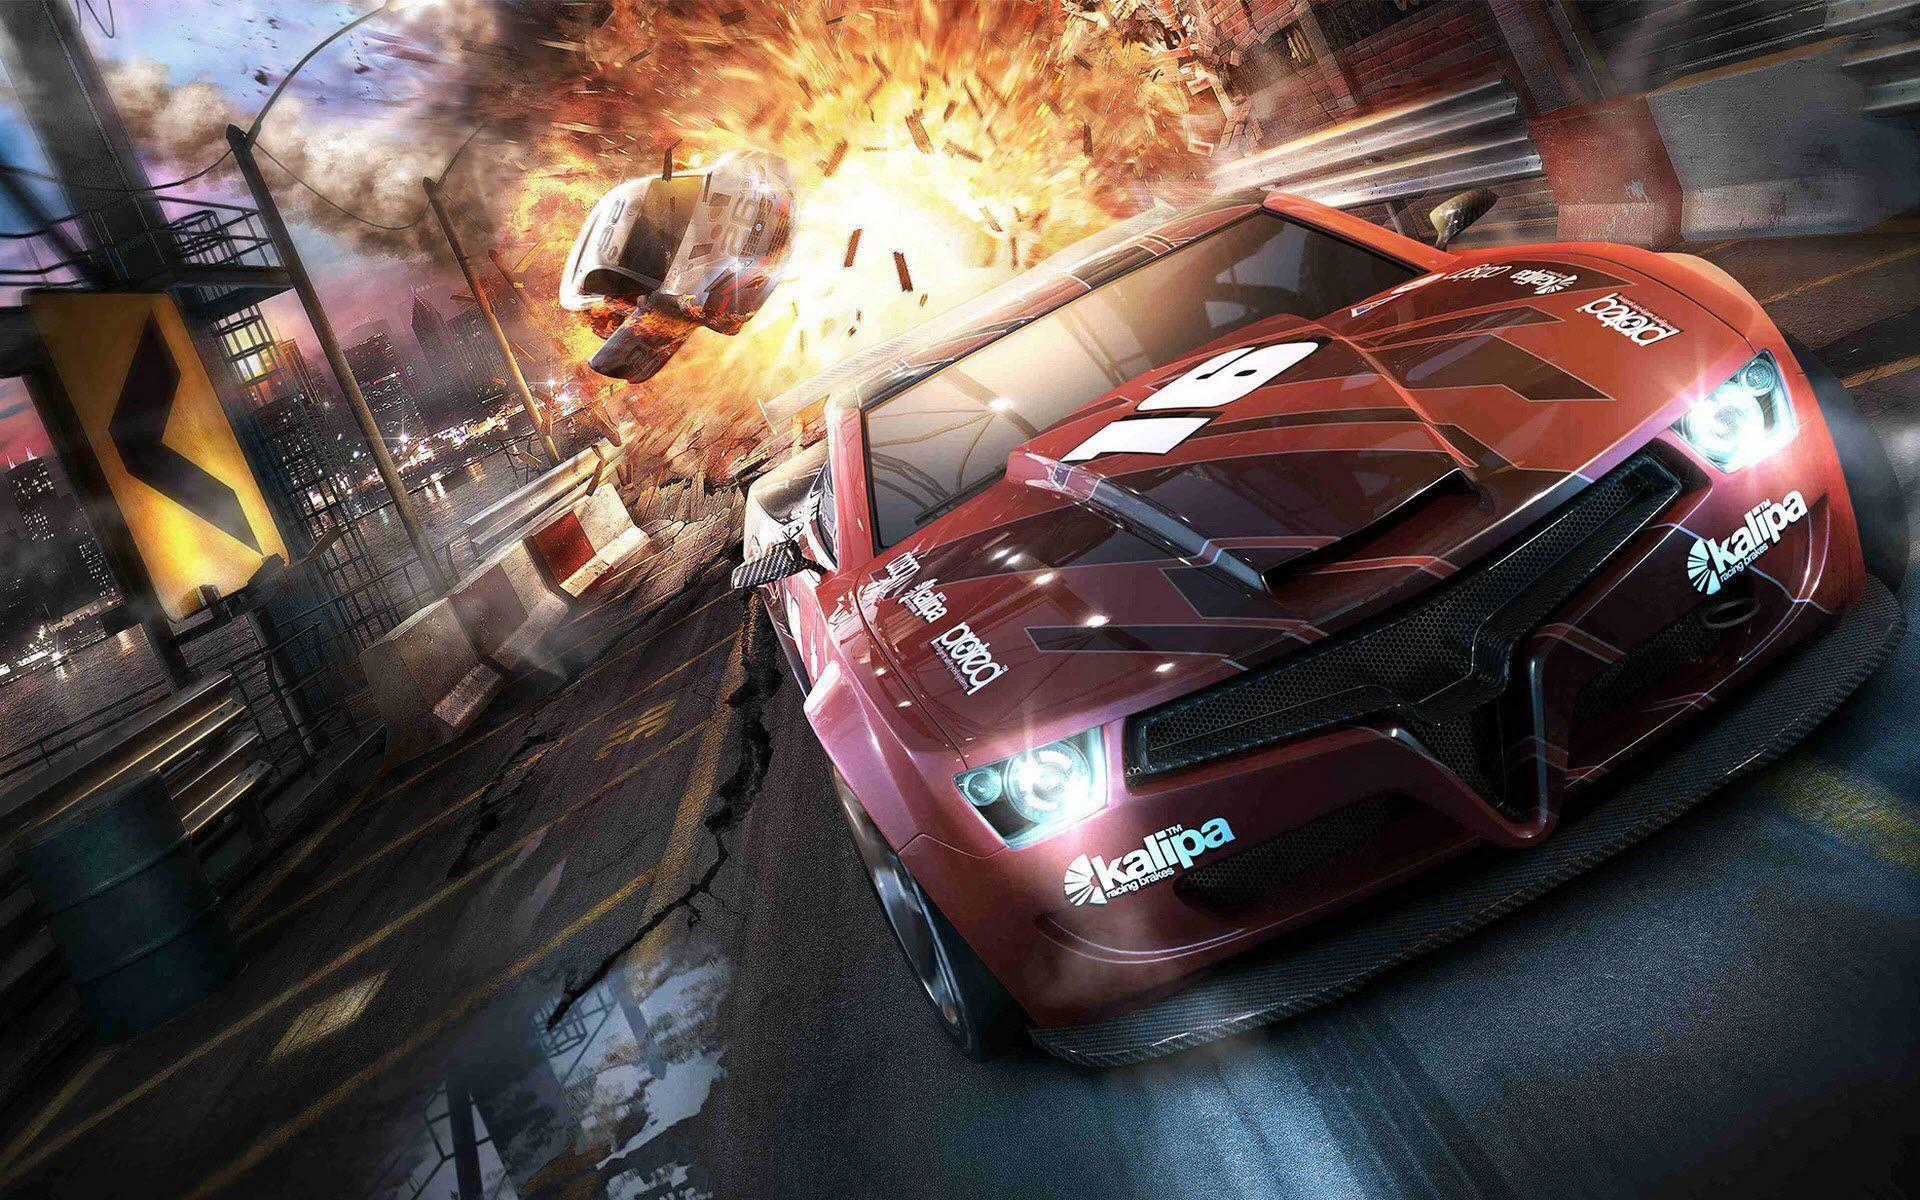 Racing Car Games Hd Wallpaper: Gaming PC Wallpapers